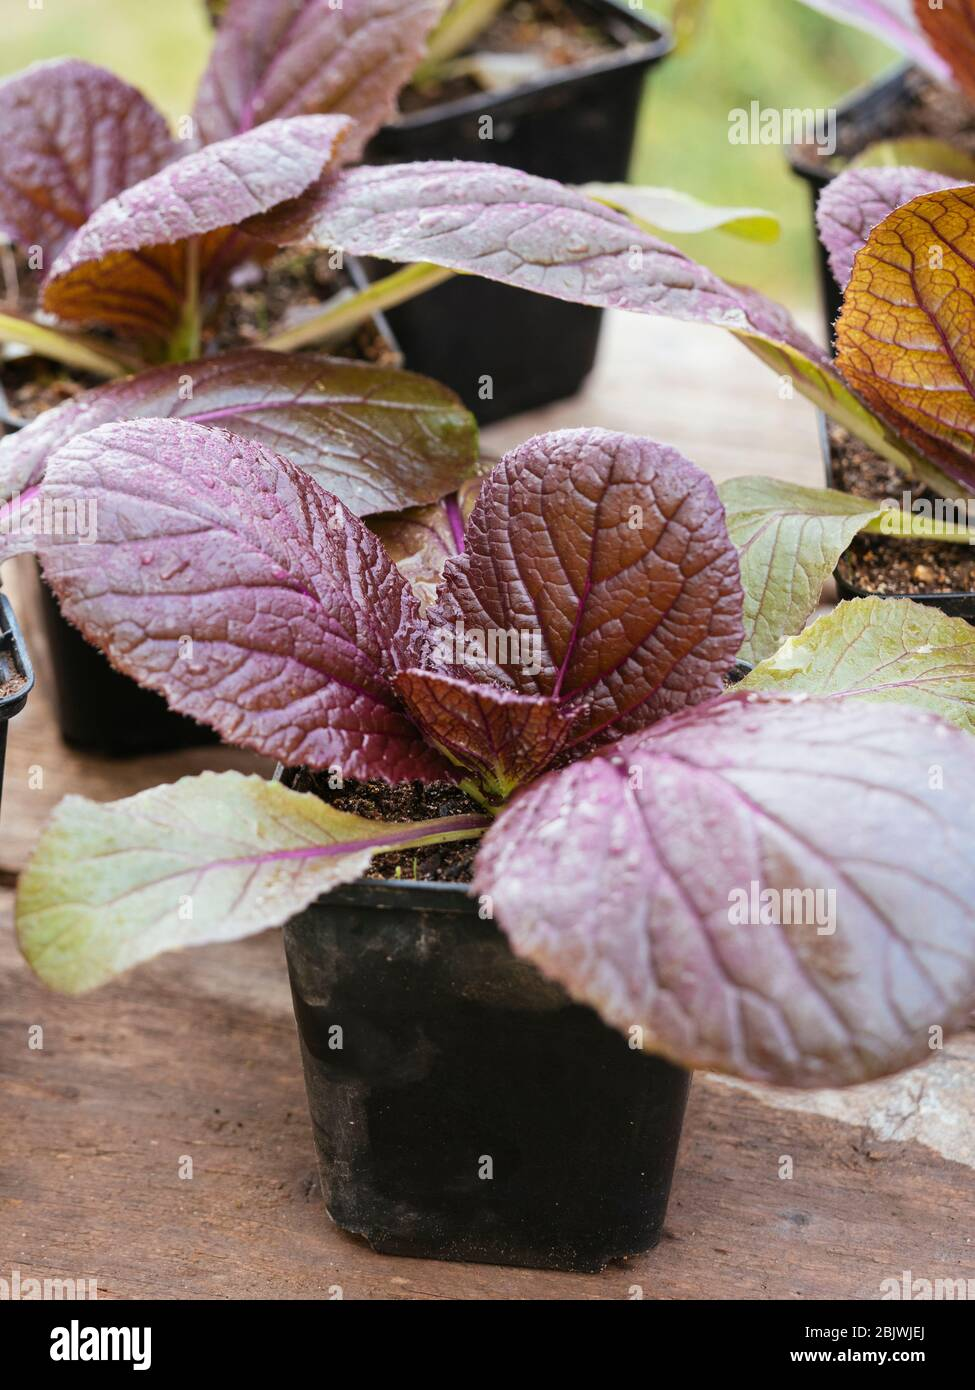 Red nappa cabbage 'Scarlette F1' (Brassica rapa subsp. pekinensis) seedlings Stock Photo